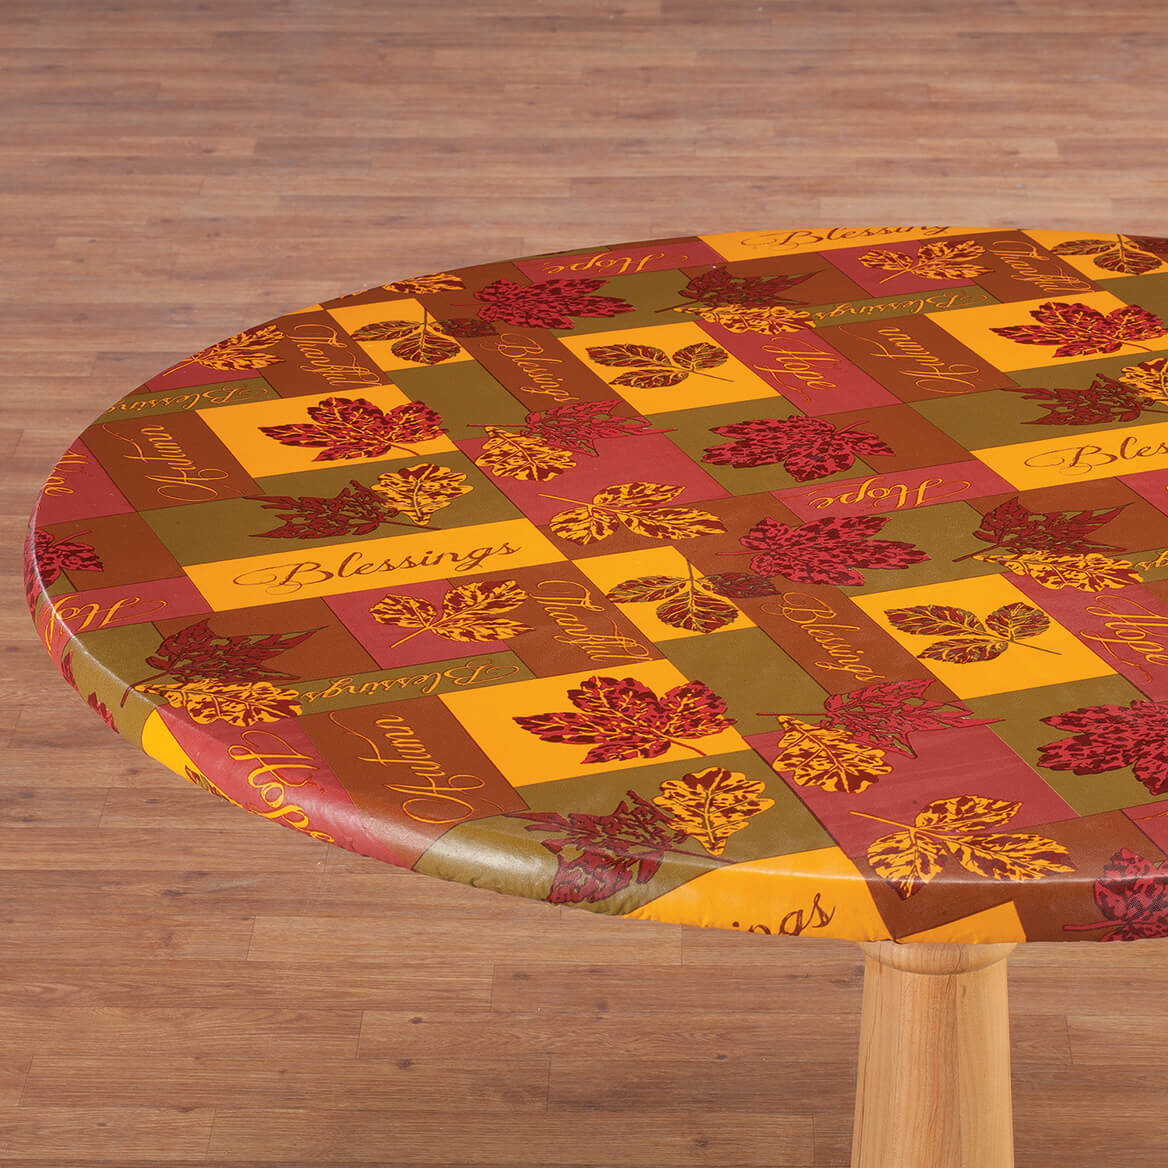 Falling Leaves Blessings Elasticized Tablecover-364100